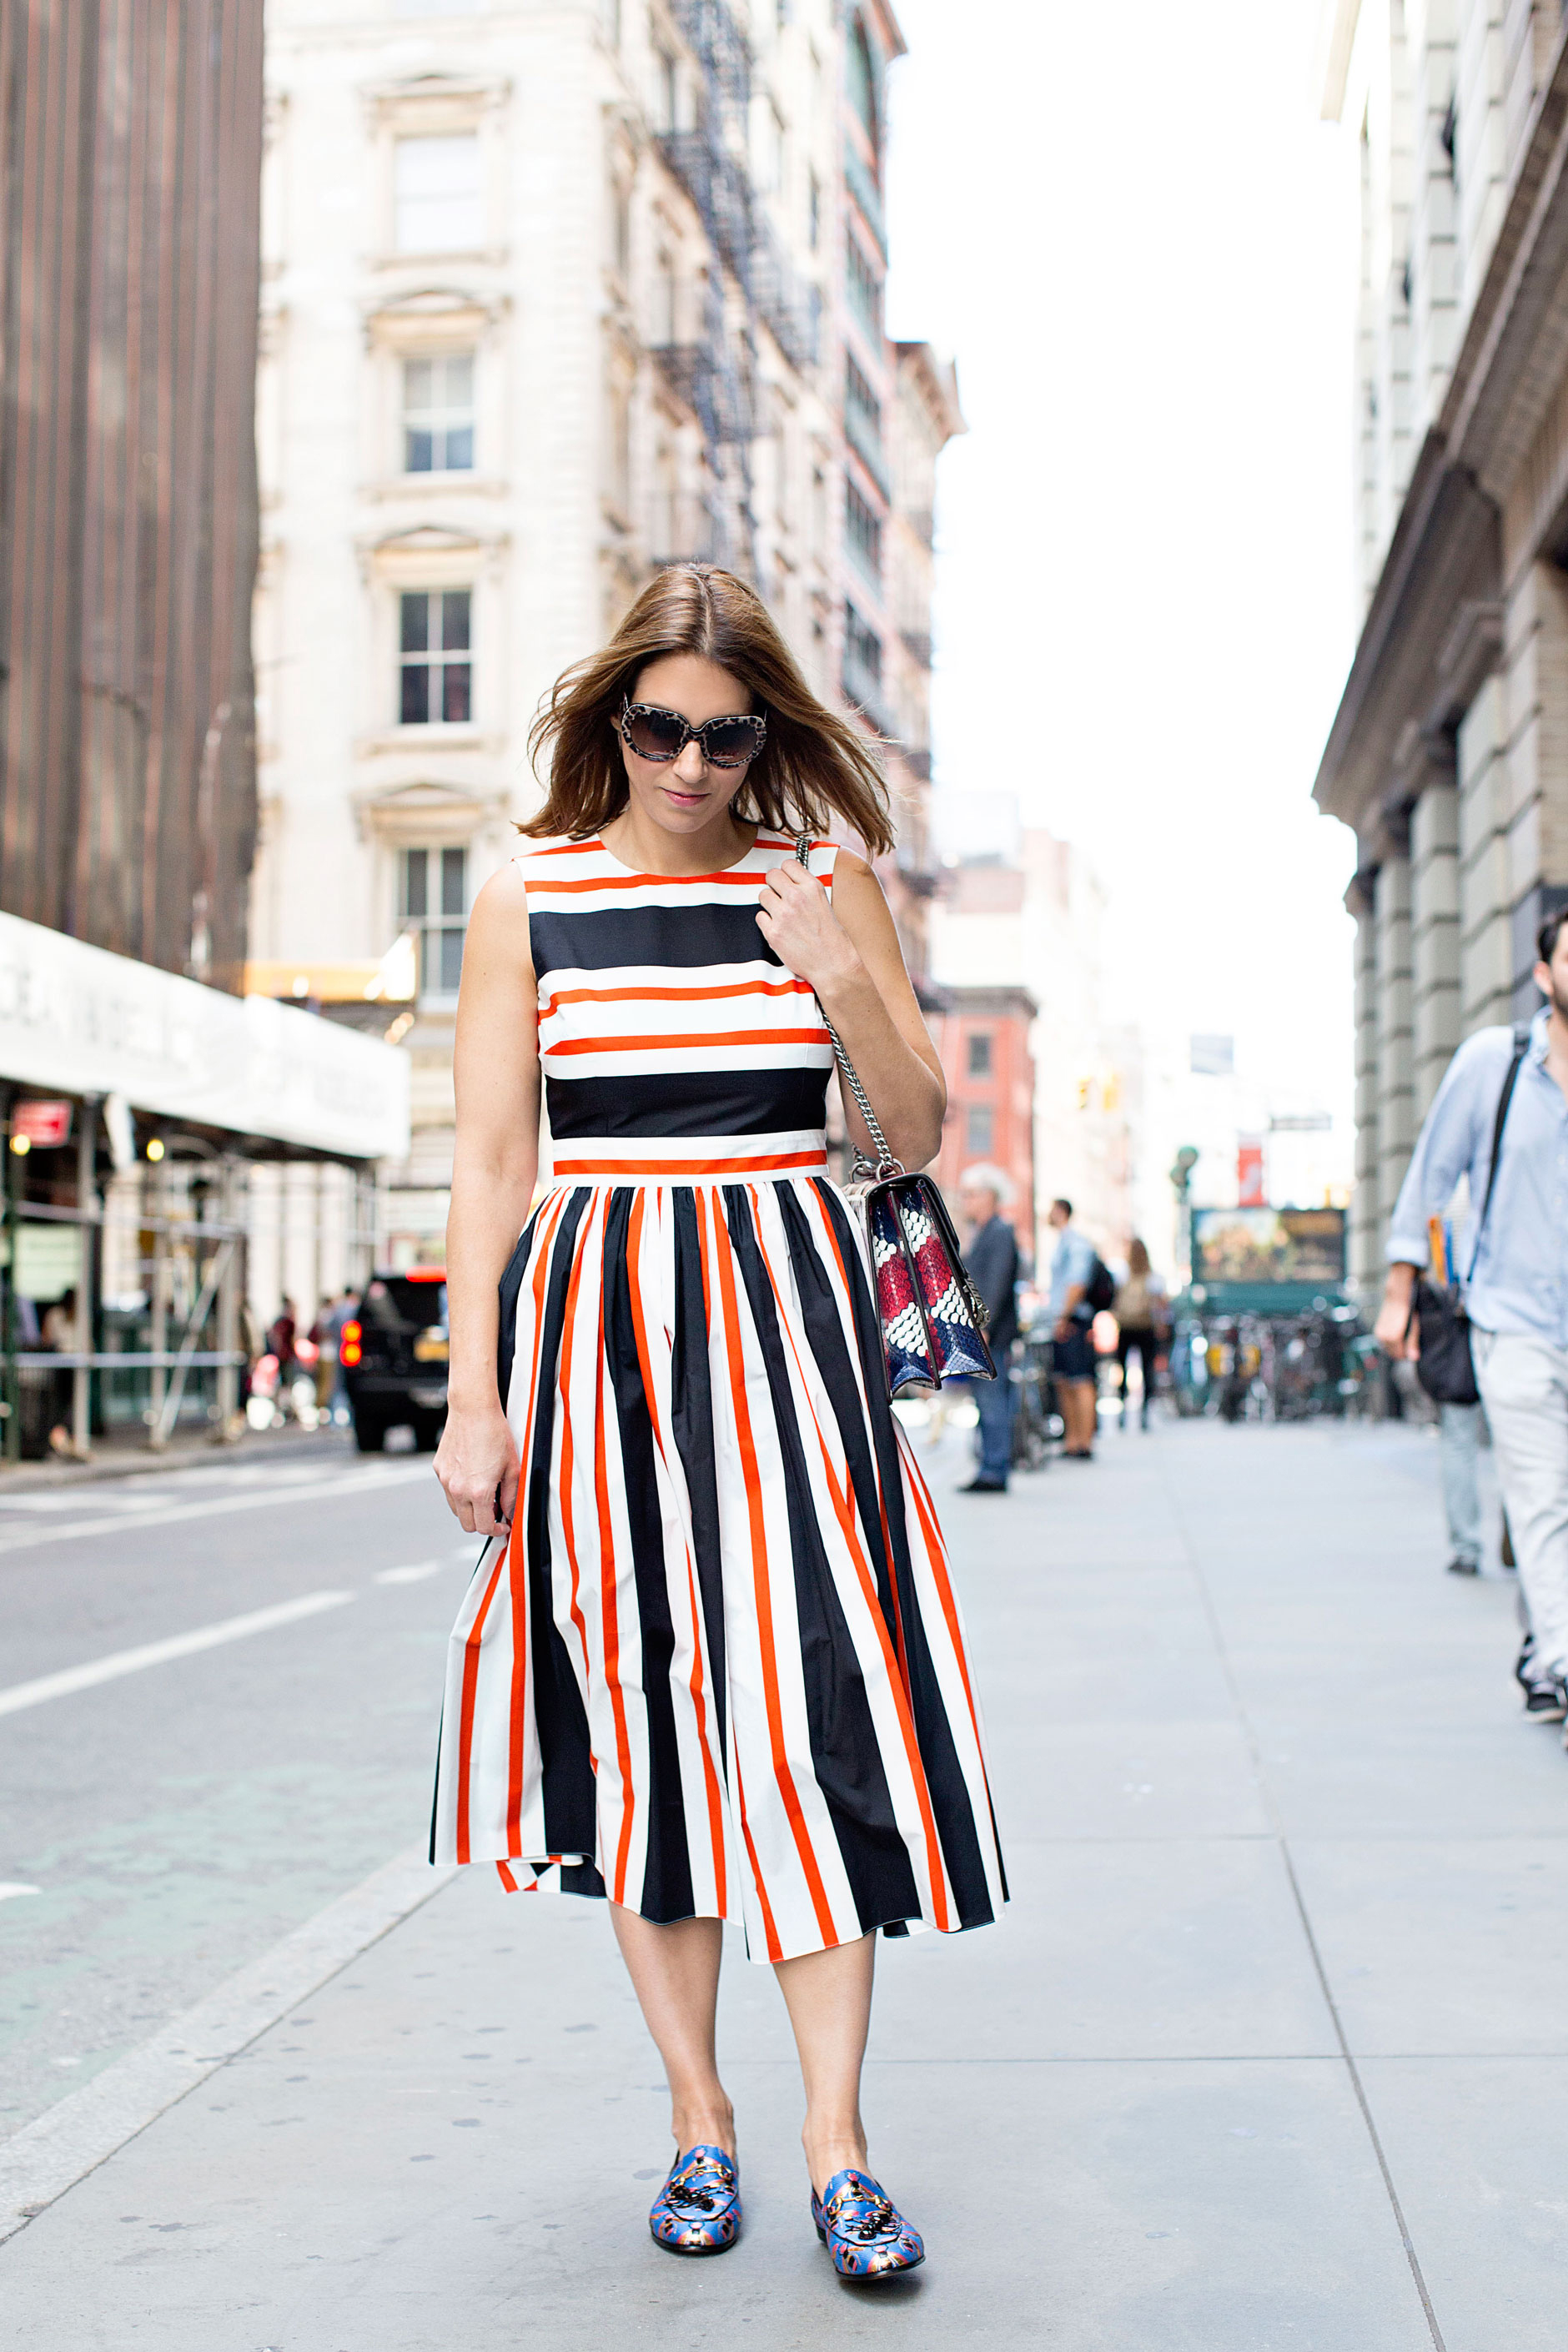 dolce_gabbana_striped_dress